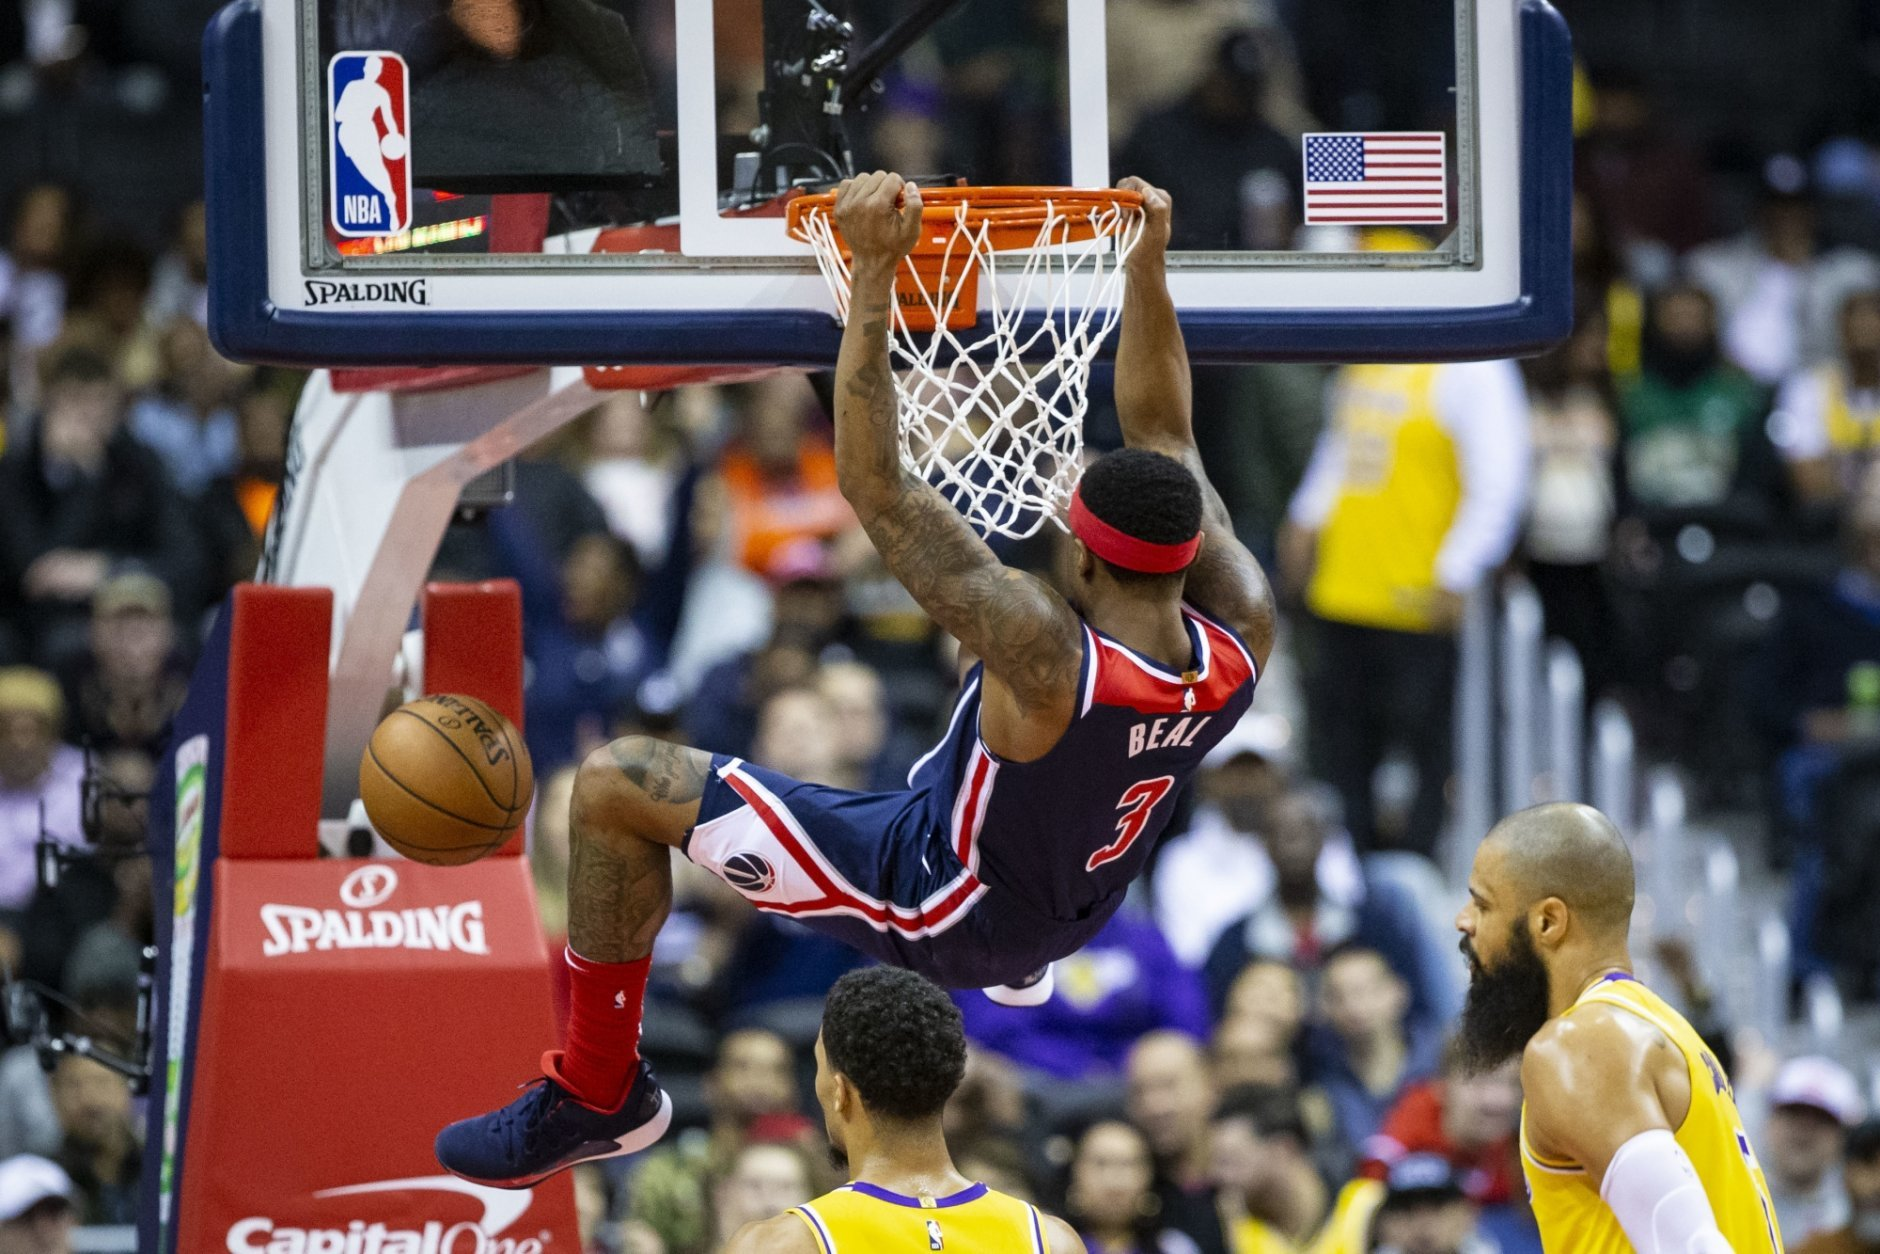 Washington Wizards guard Bradley Beal (3) dunks the ball during the first half of an NBA basketball game, Sunday, Dec. 16, 2018, in Washington. (AP Photo/Al Drago)